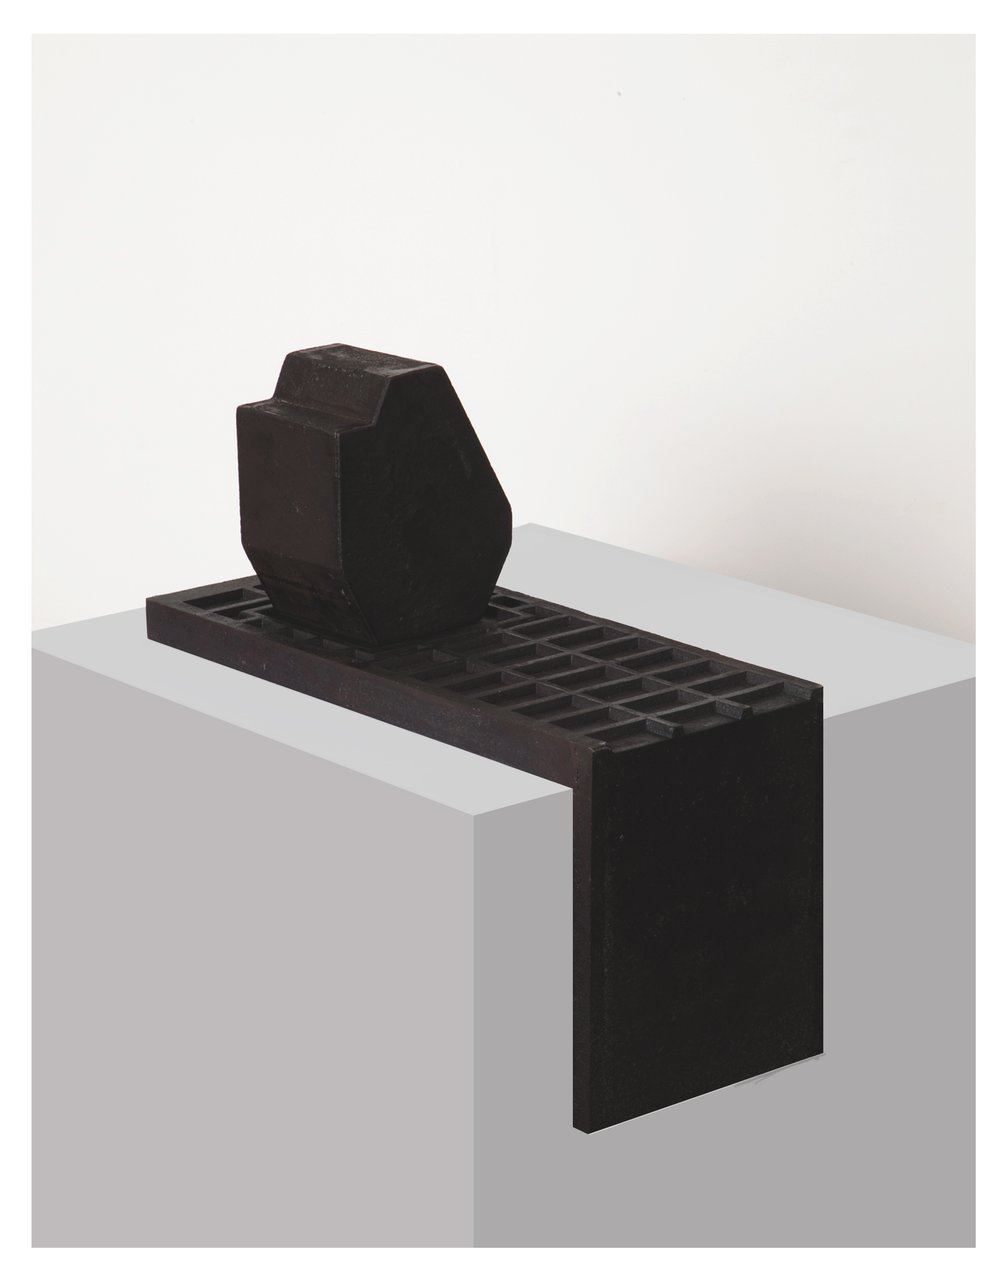 Seher Shah  Untitled (monolith and corner grid),  2015, Cast iron, 16 x 16 x 7 in (41h x 40w x 18d cm) 31 kgs.